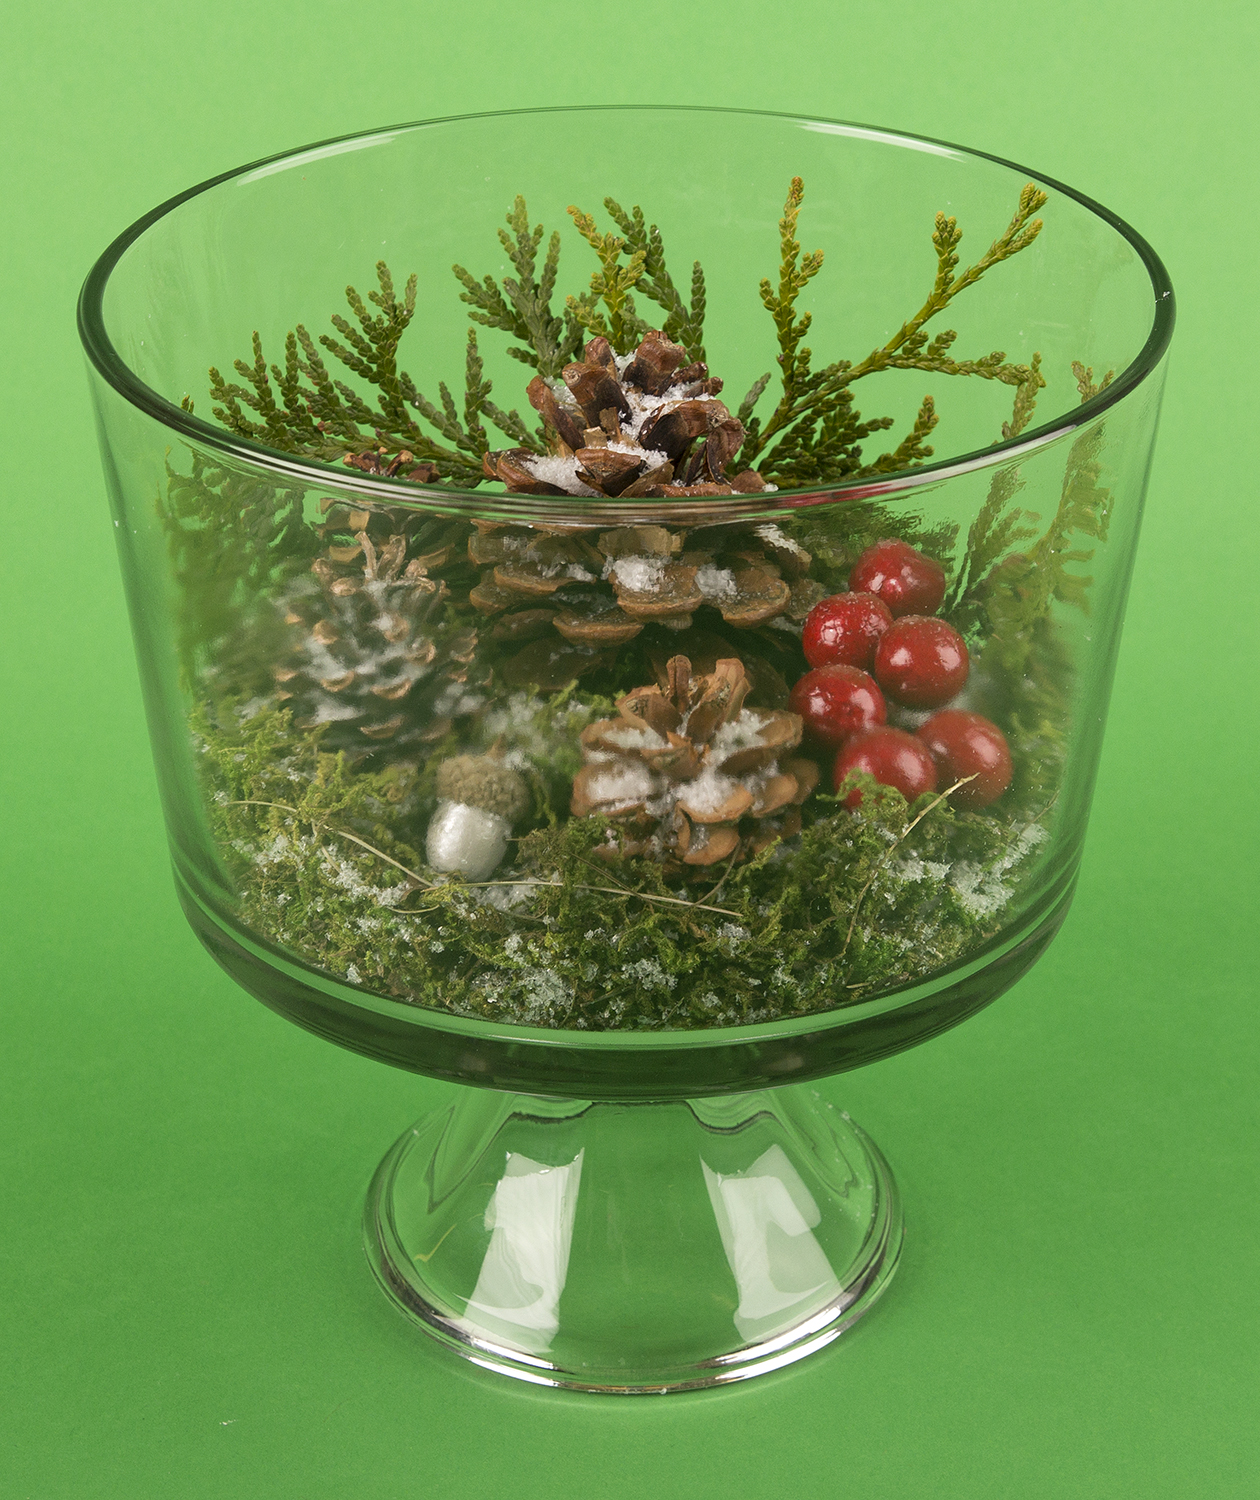 Christmas crafts ideas - Trifle Bowl Terrarium